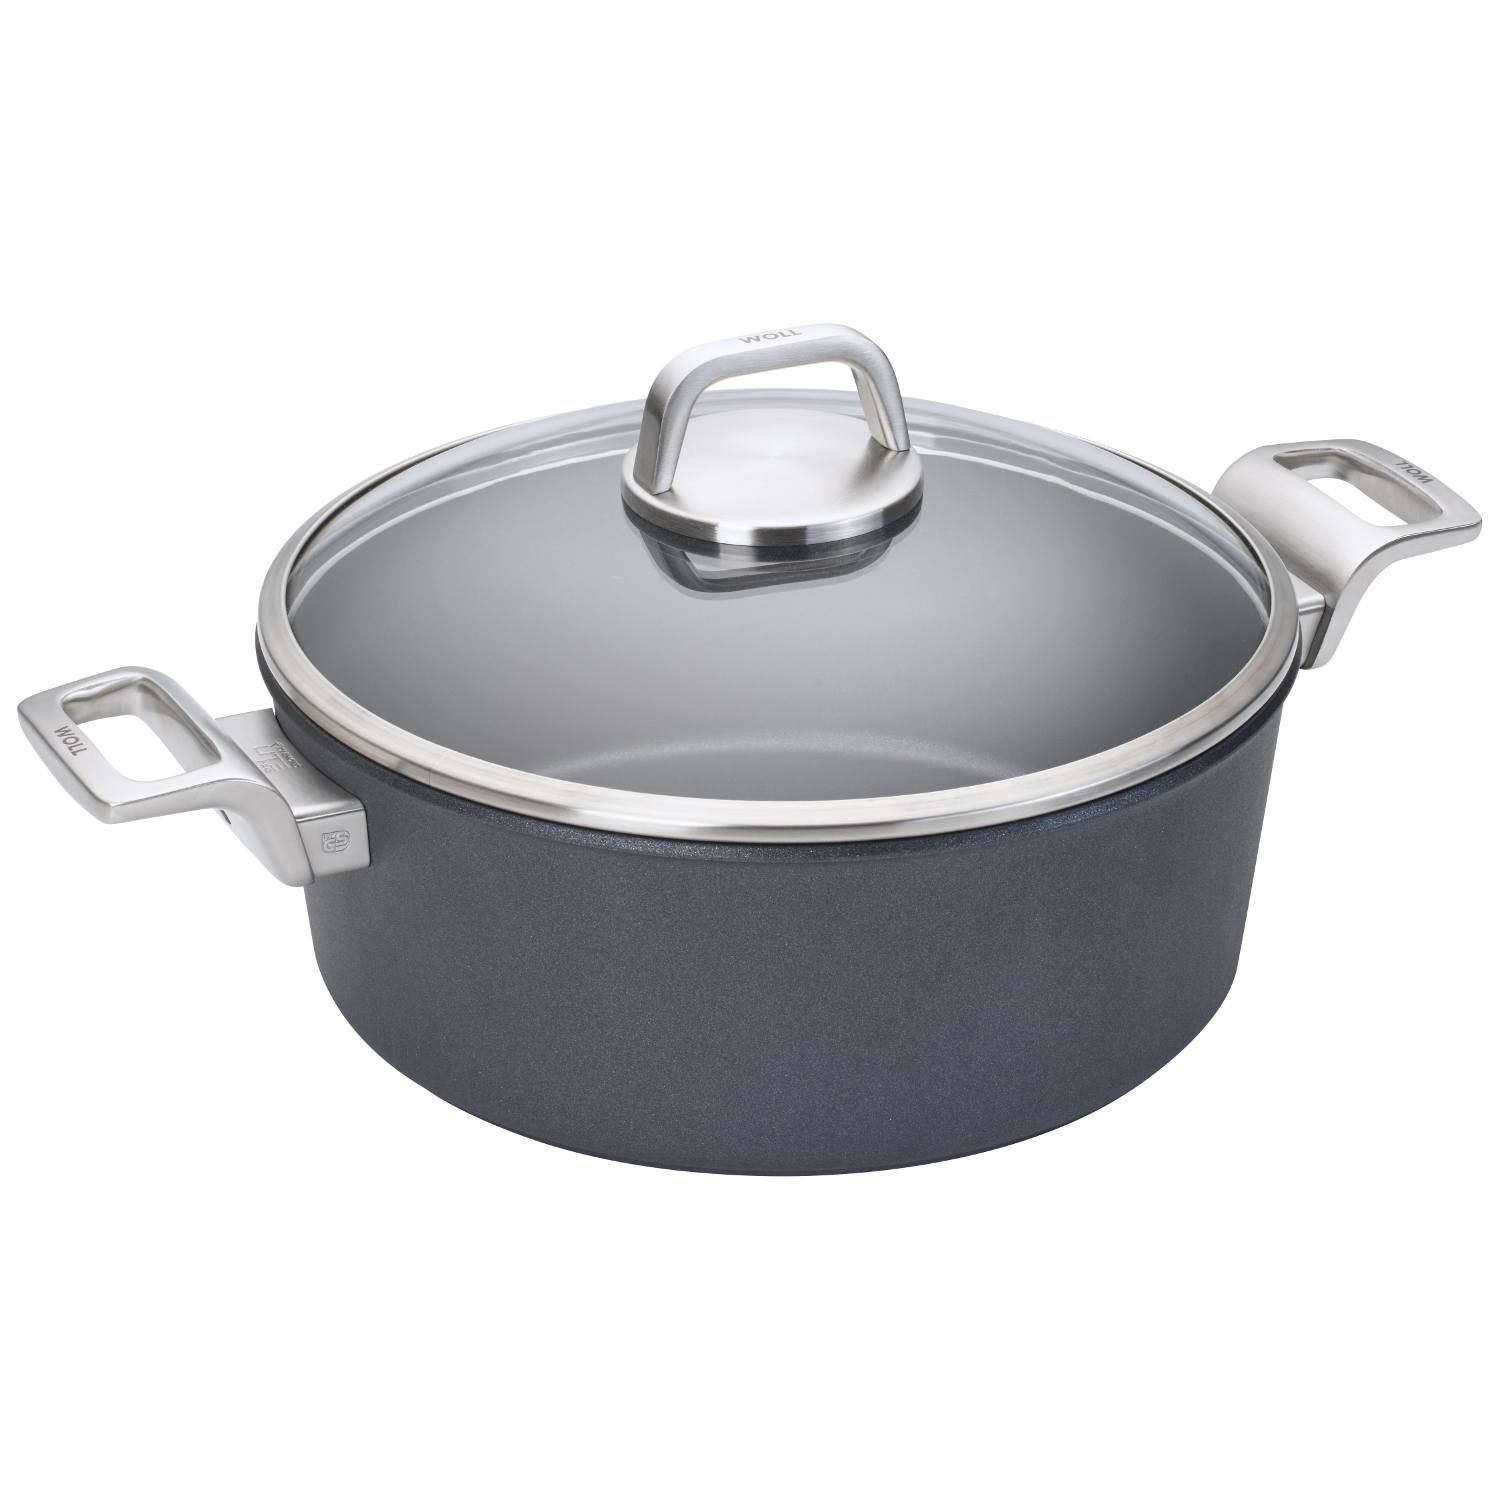 Woll Diamond Lite Pro 4.2 Quart Casserole with Lid